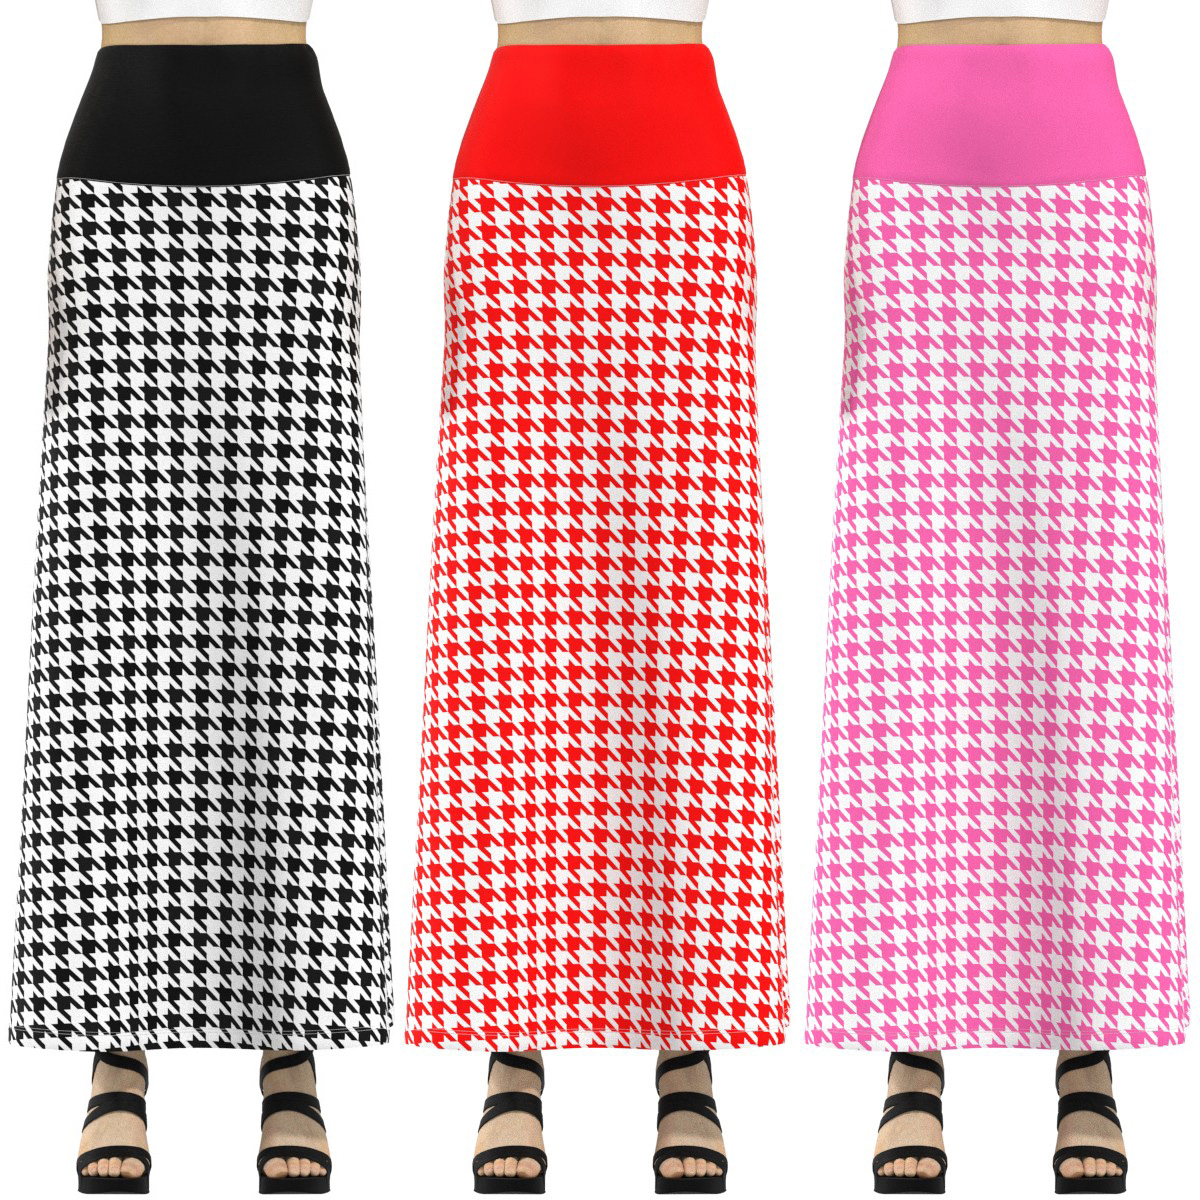 67170c1022a Details about EightyThreeXYZ Black Red Pink White Houndstooth Long Maxi  Skirt Size XS-3XL Plus